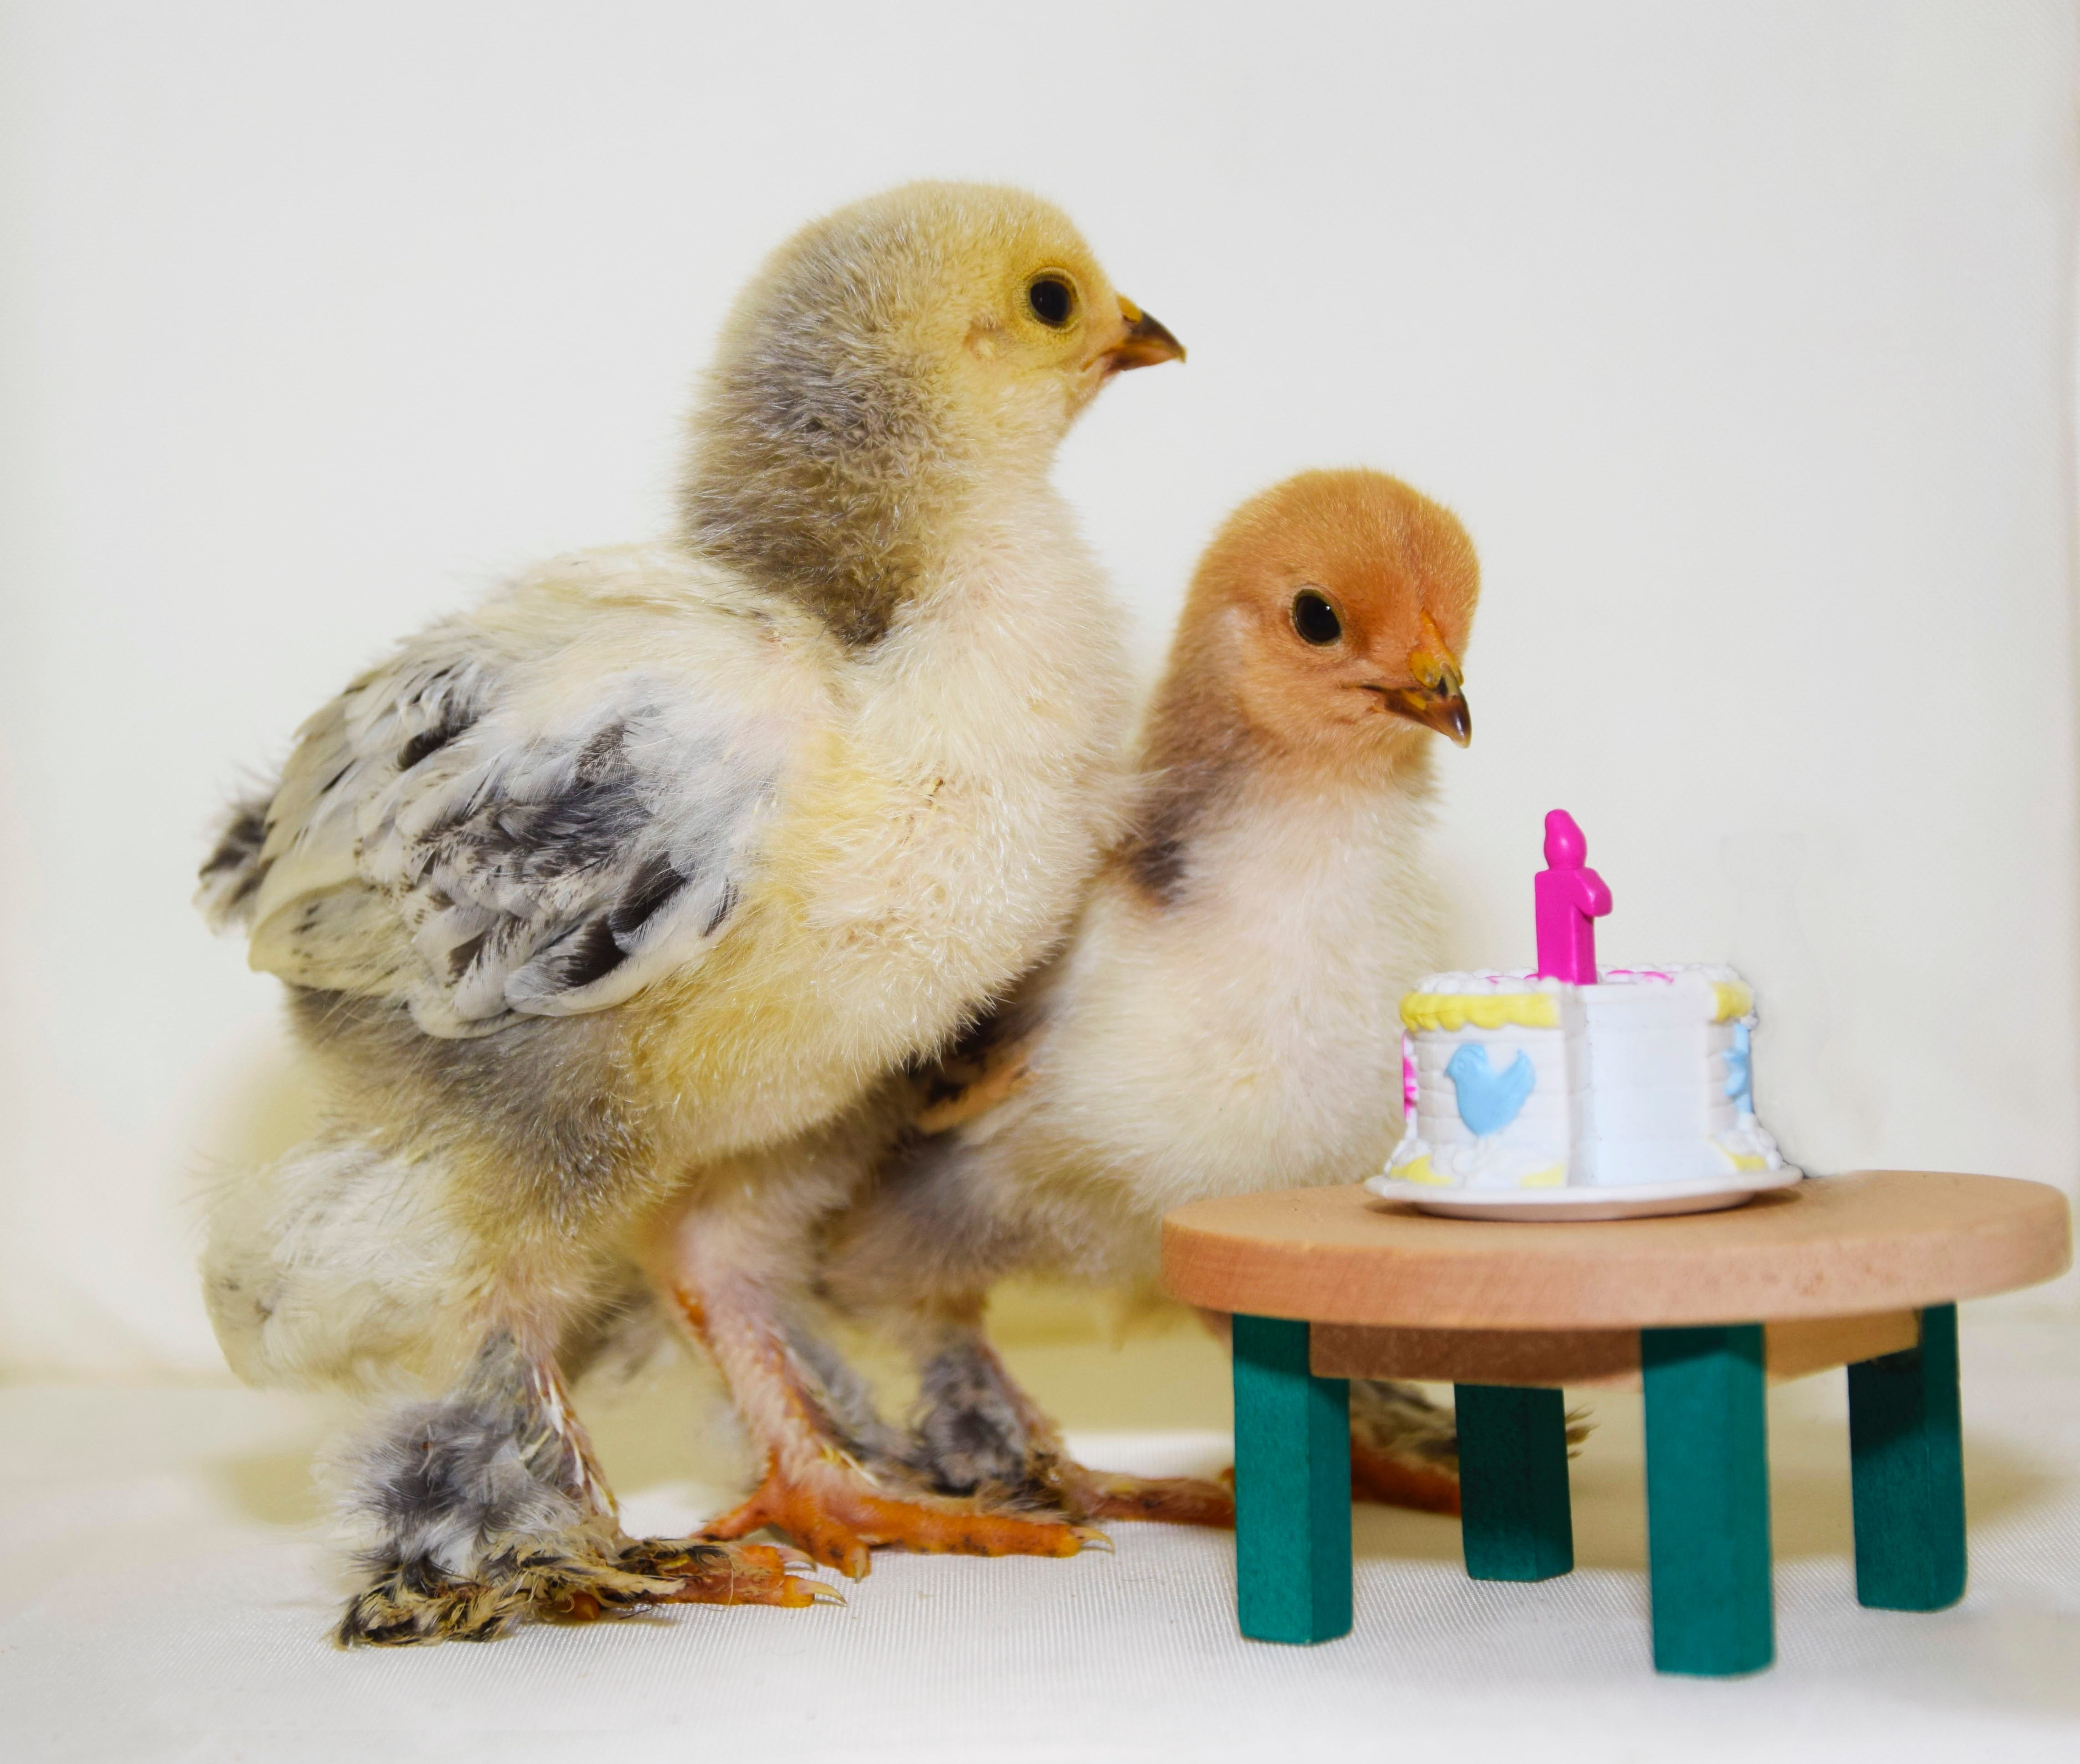 Raising chickens